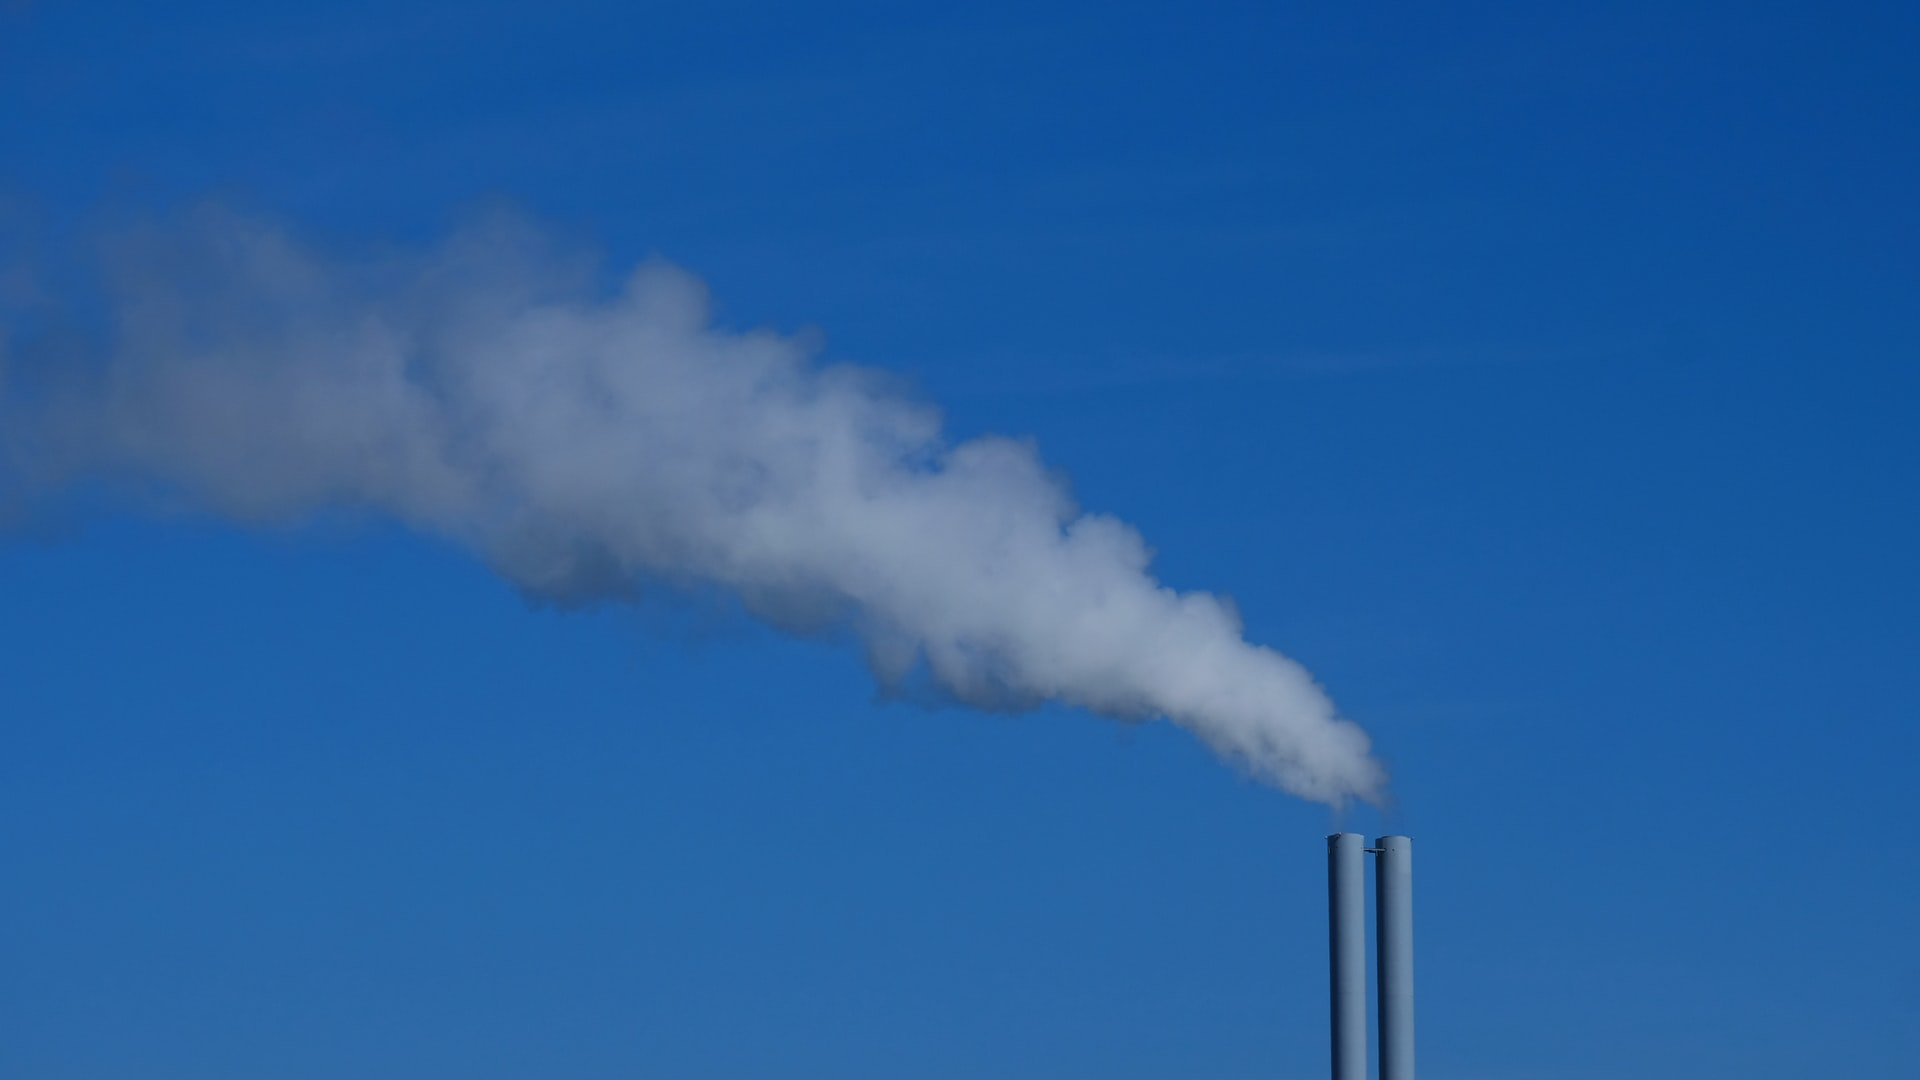 while the sky is a bright blue, gases that pollute the air are being released from two grey chimneys.